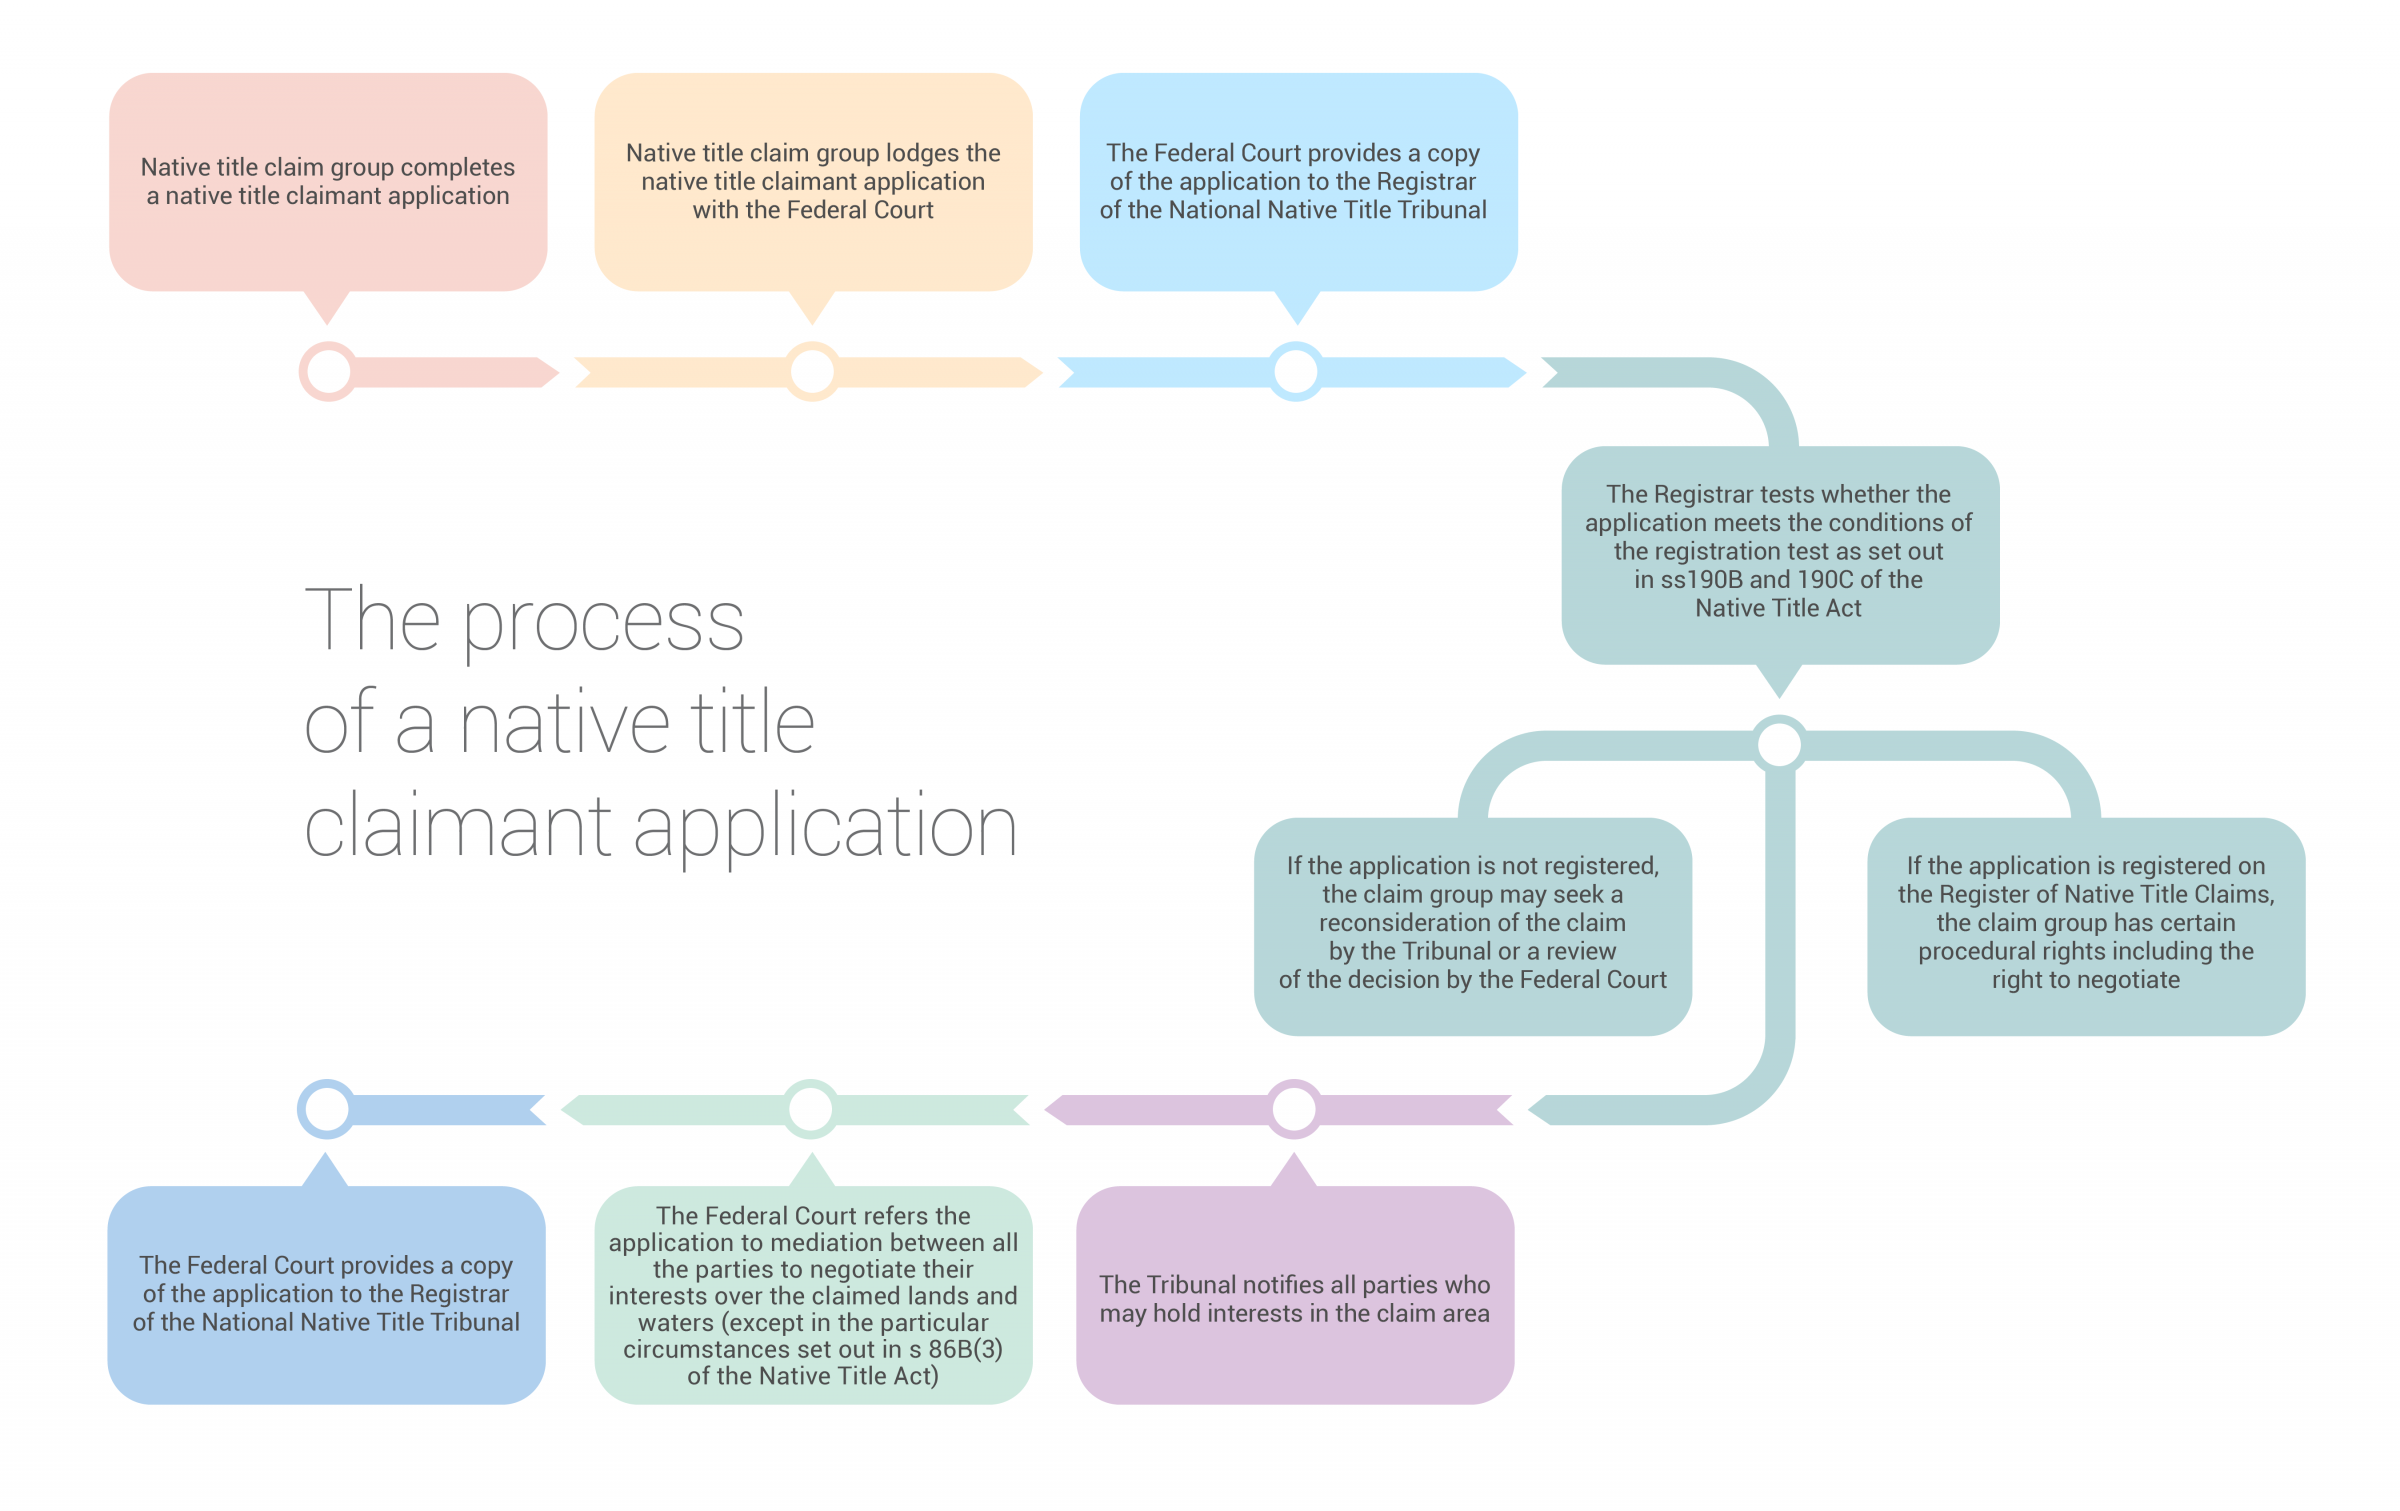 The Native Title Act and PBC regulations.